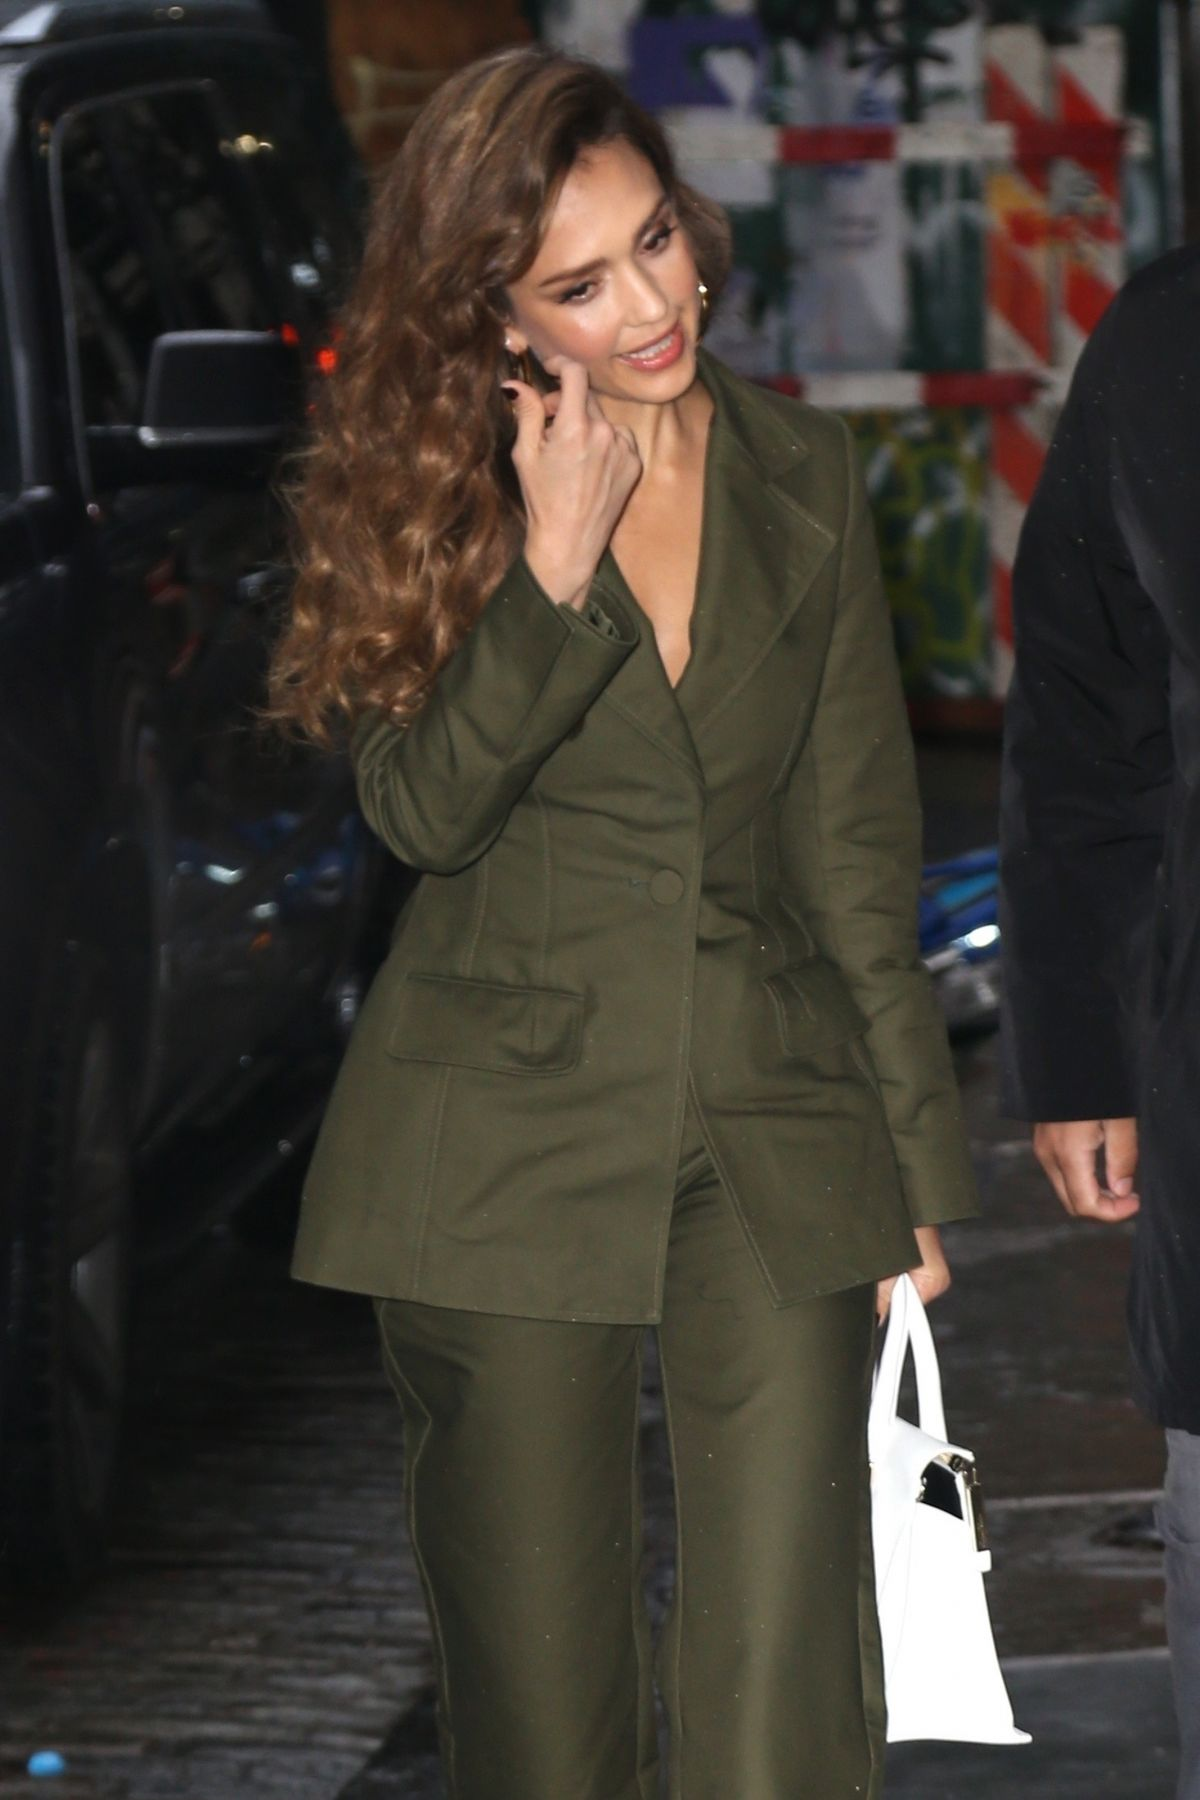 JESSICA ALBA Out In New York 05132019 HawtCelebs